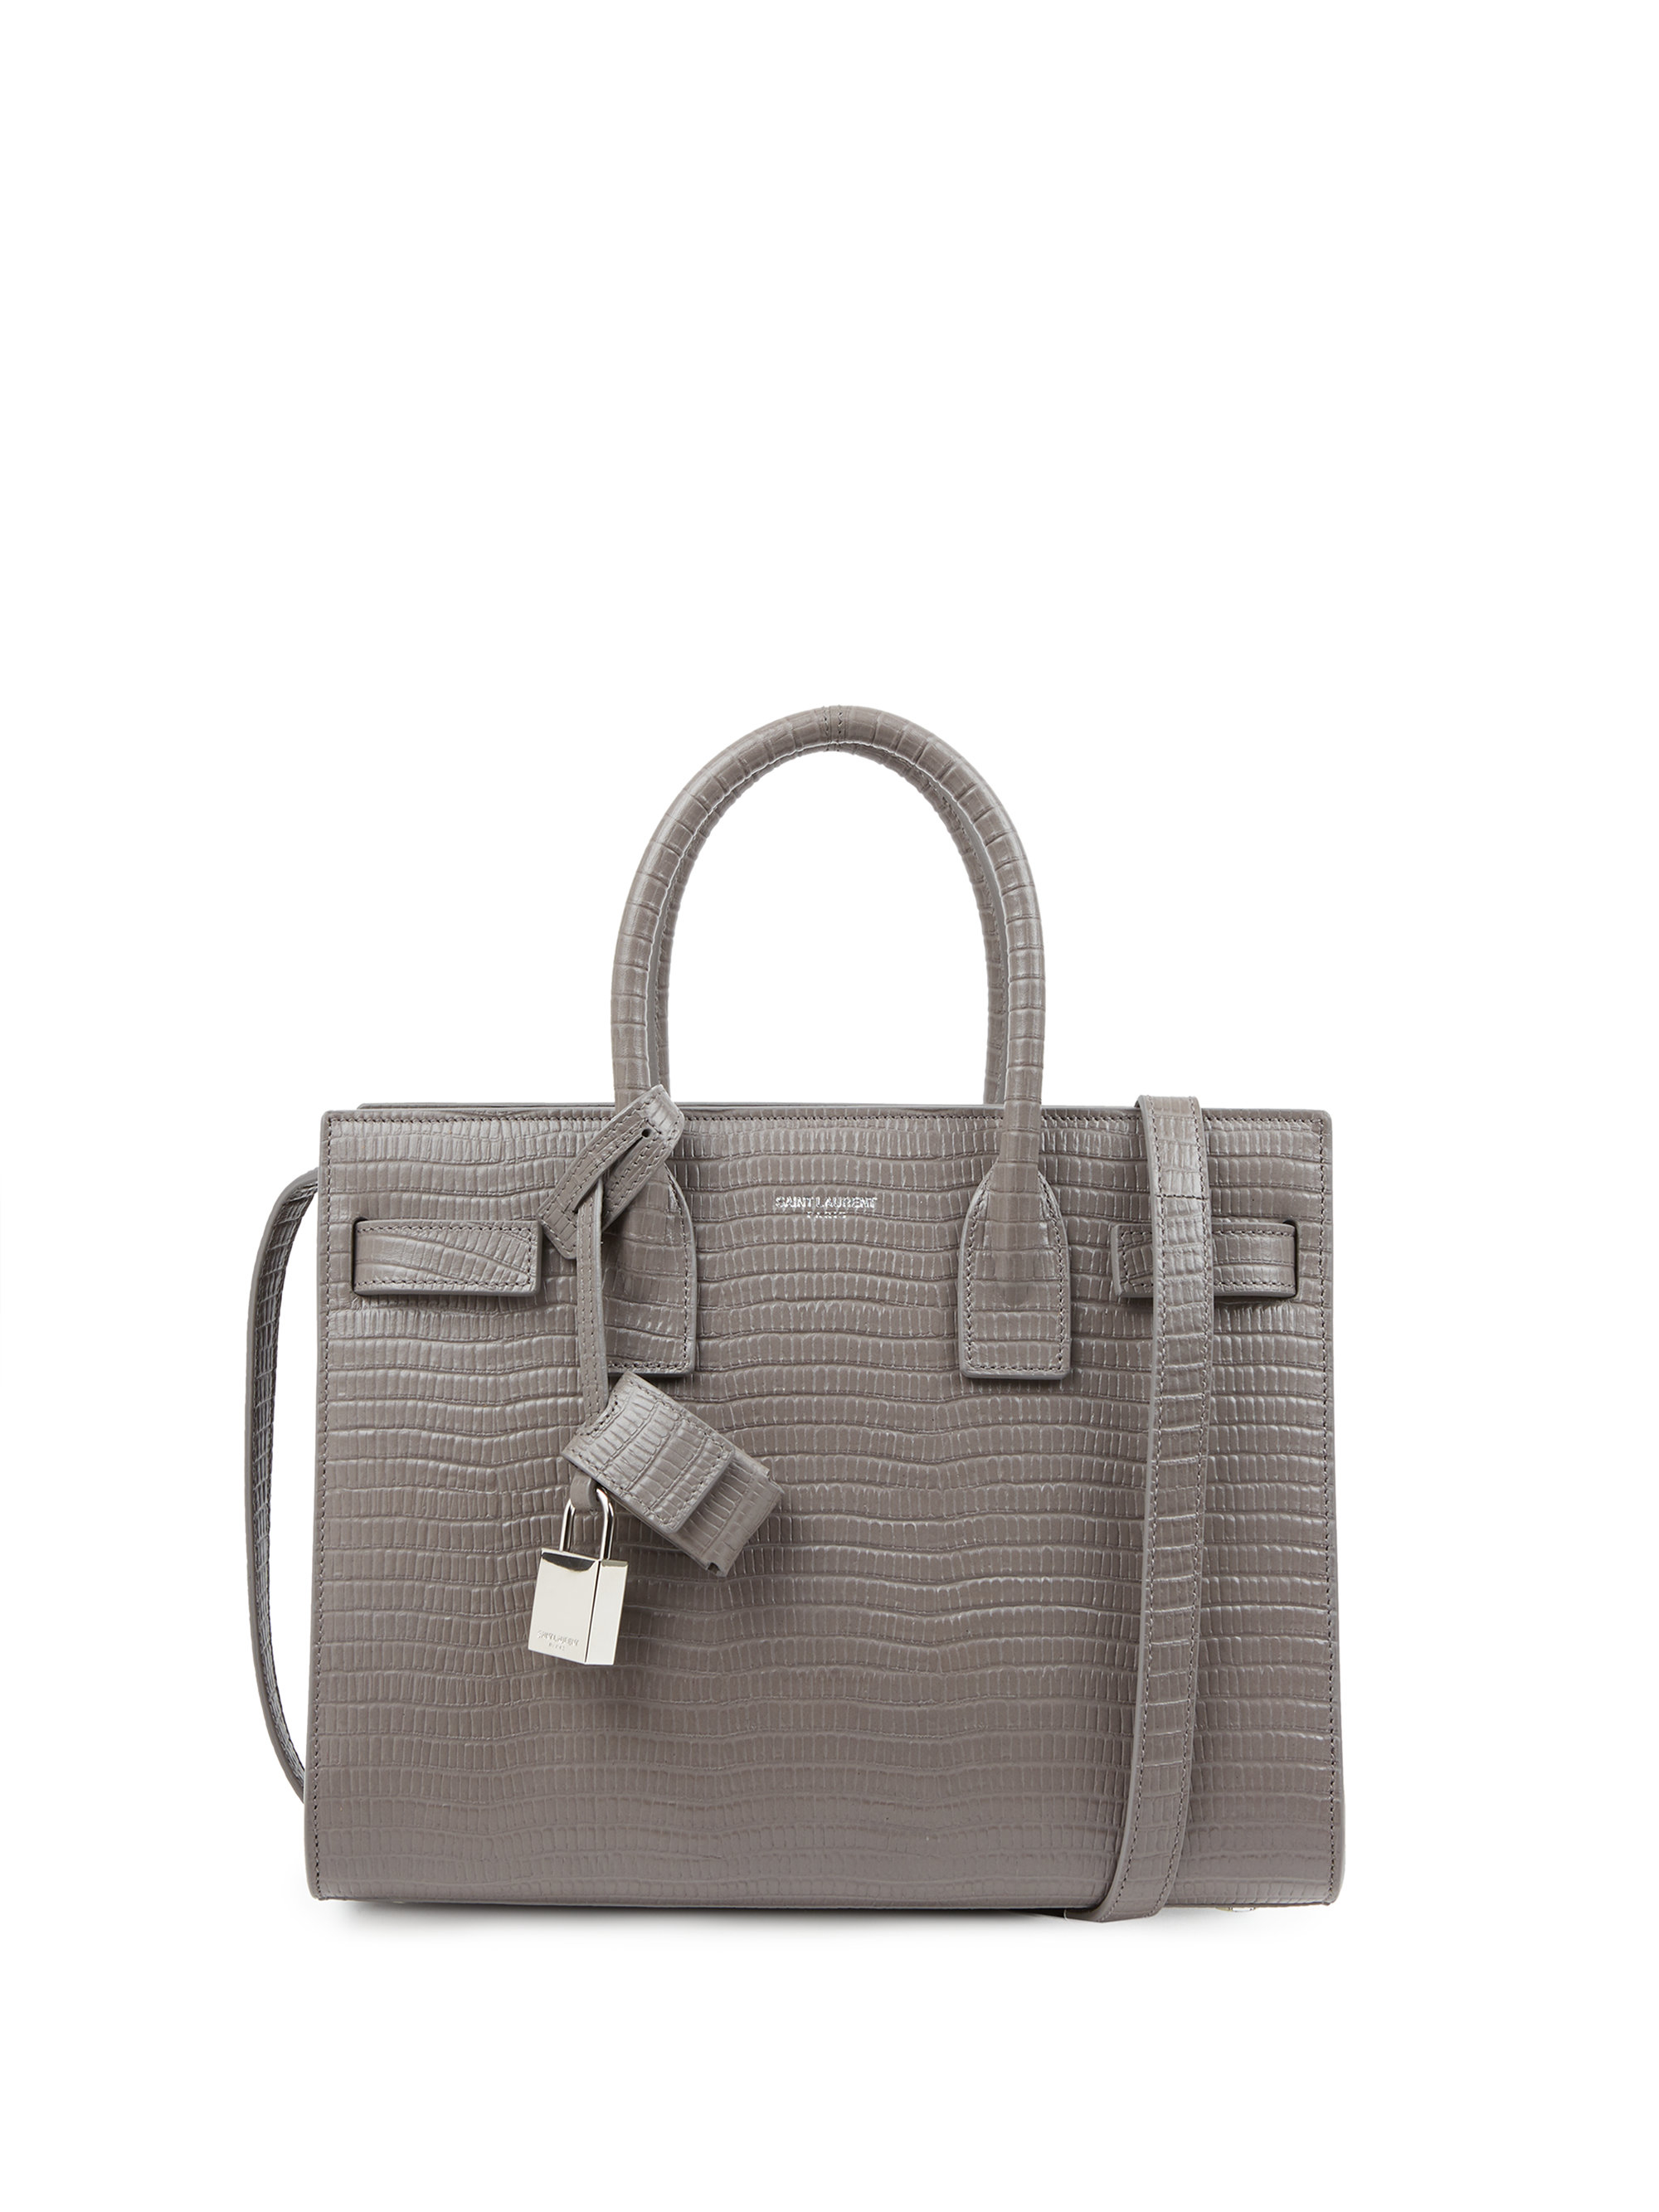 ysl replica handbag - yves saint laurent sac de jour baby croc-embossed leather tote ...